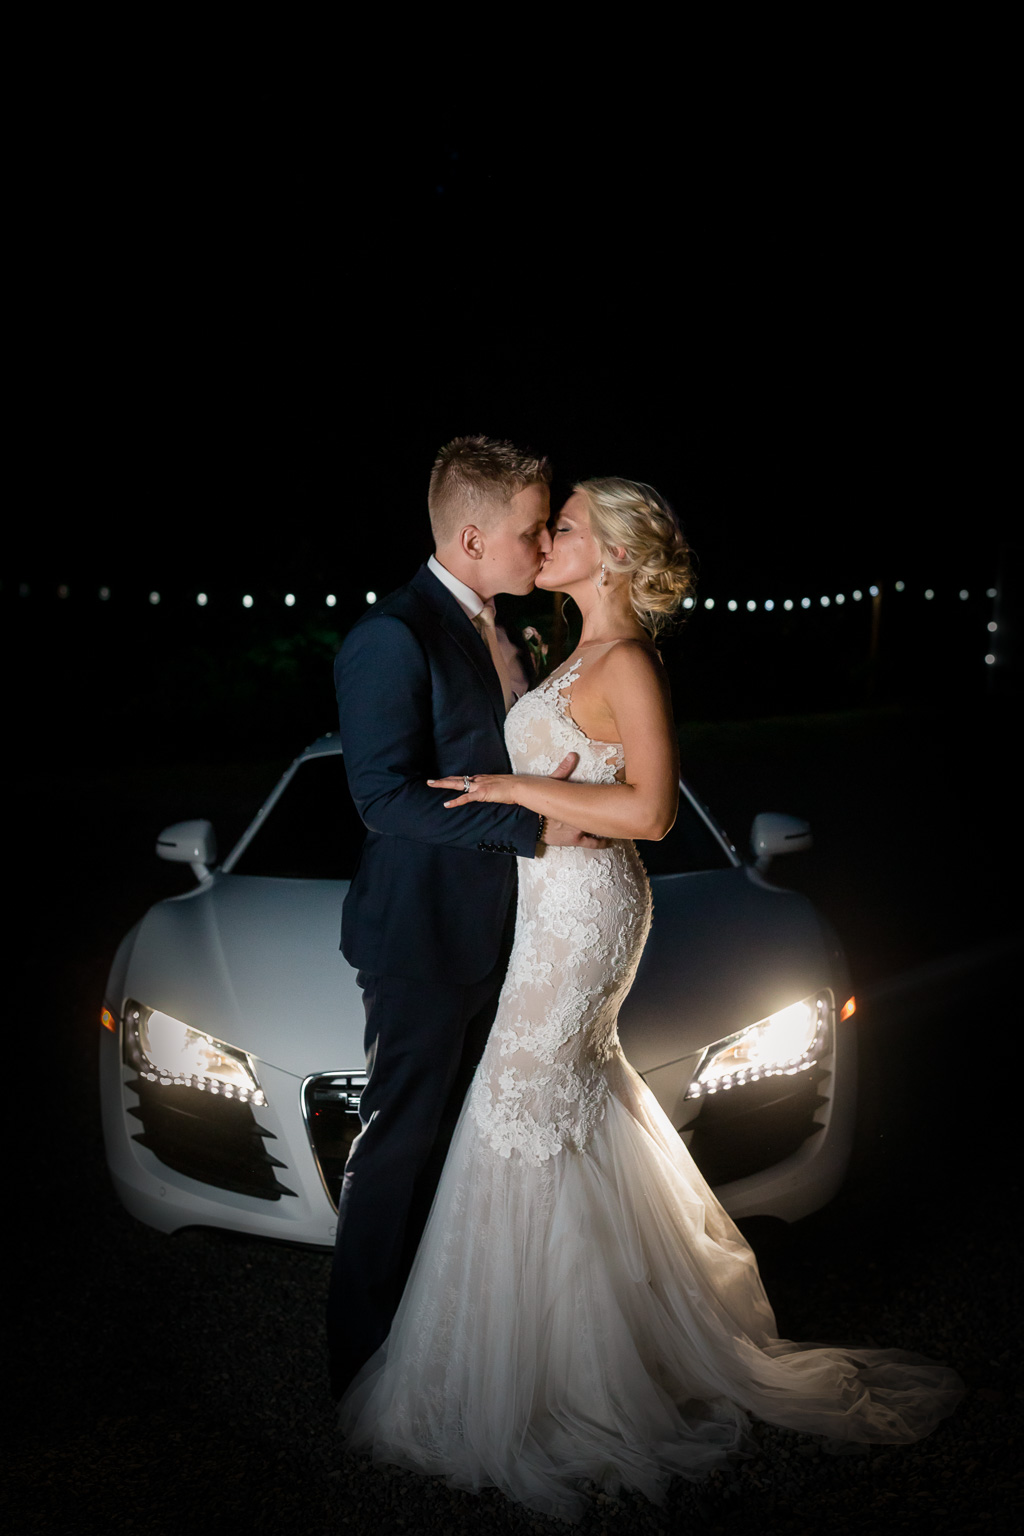 creative night photo of a Rock Creek Gardens wedding of the bride and groom in front of their car